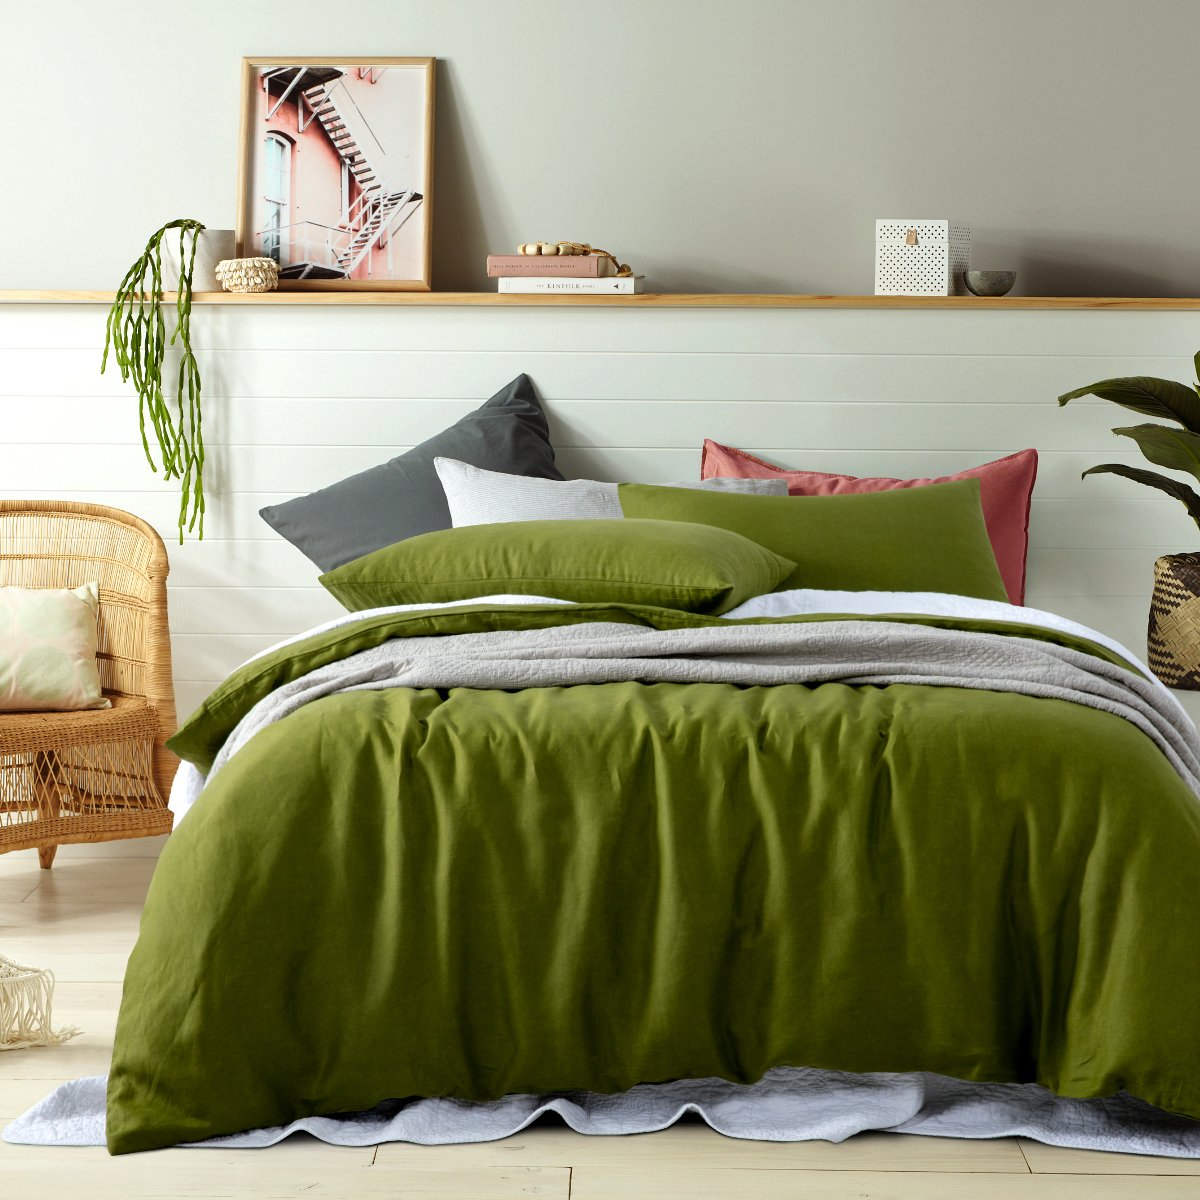 100% Linen mossy green duvet cover set. Vinatge wash linen quilt cover set